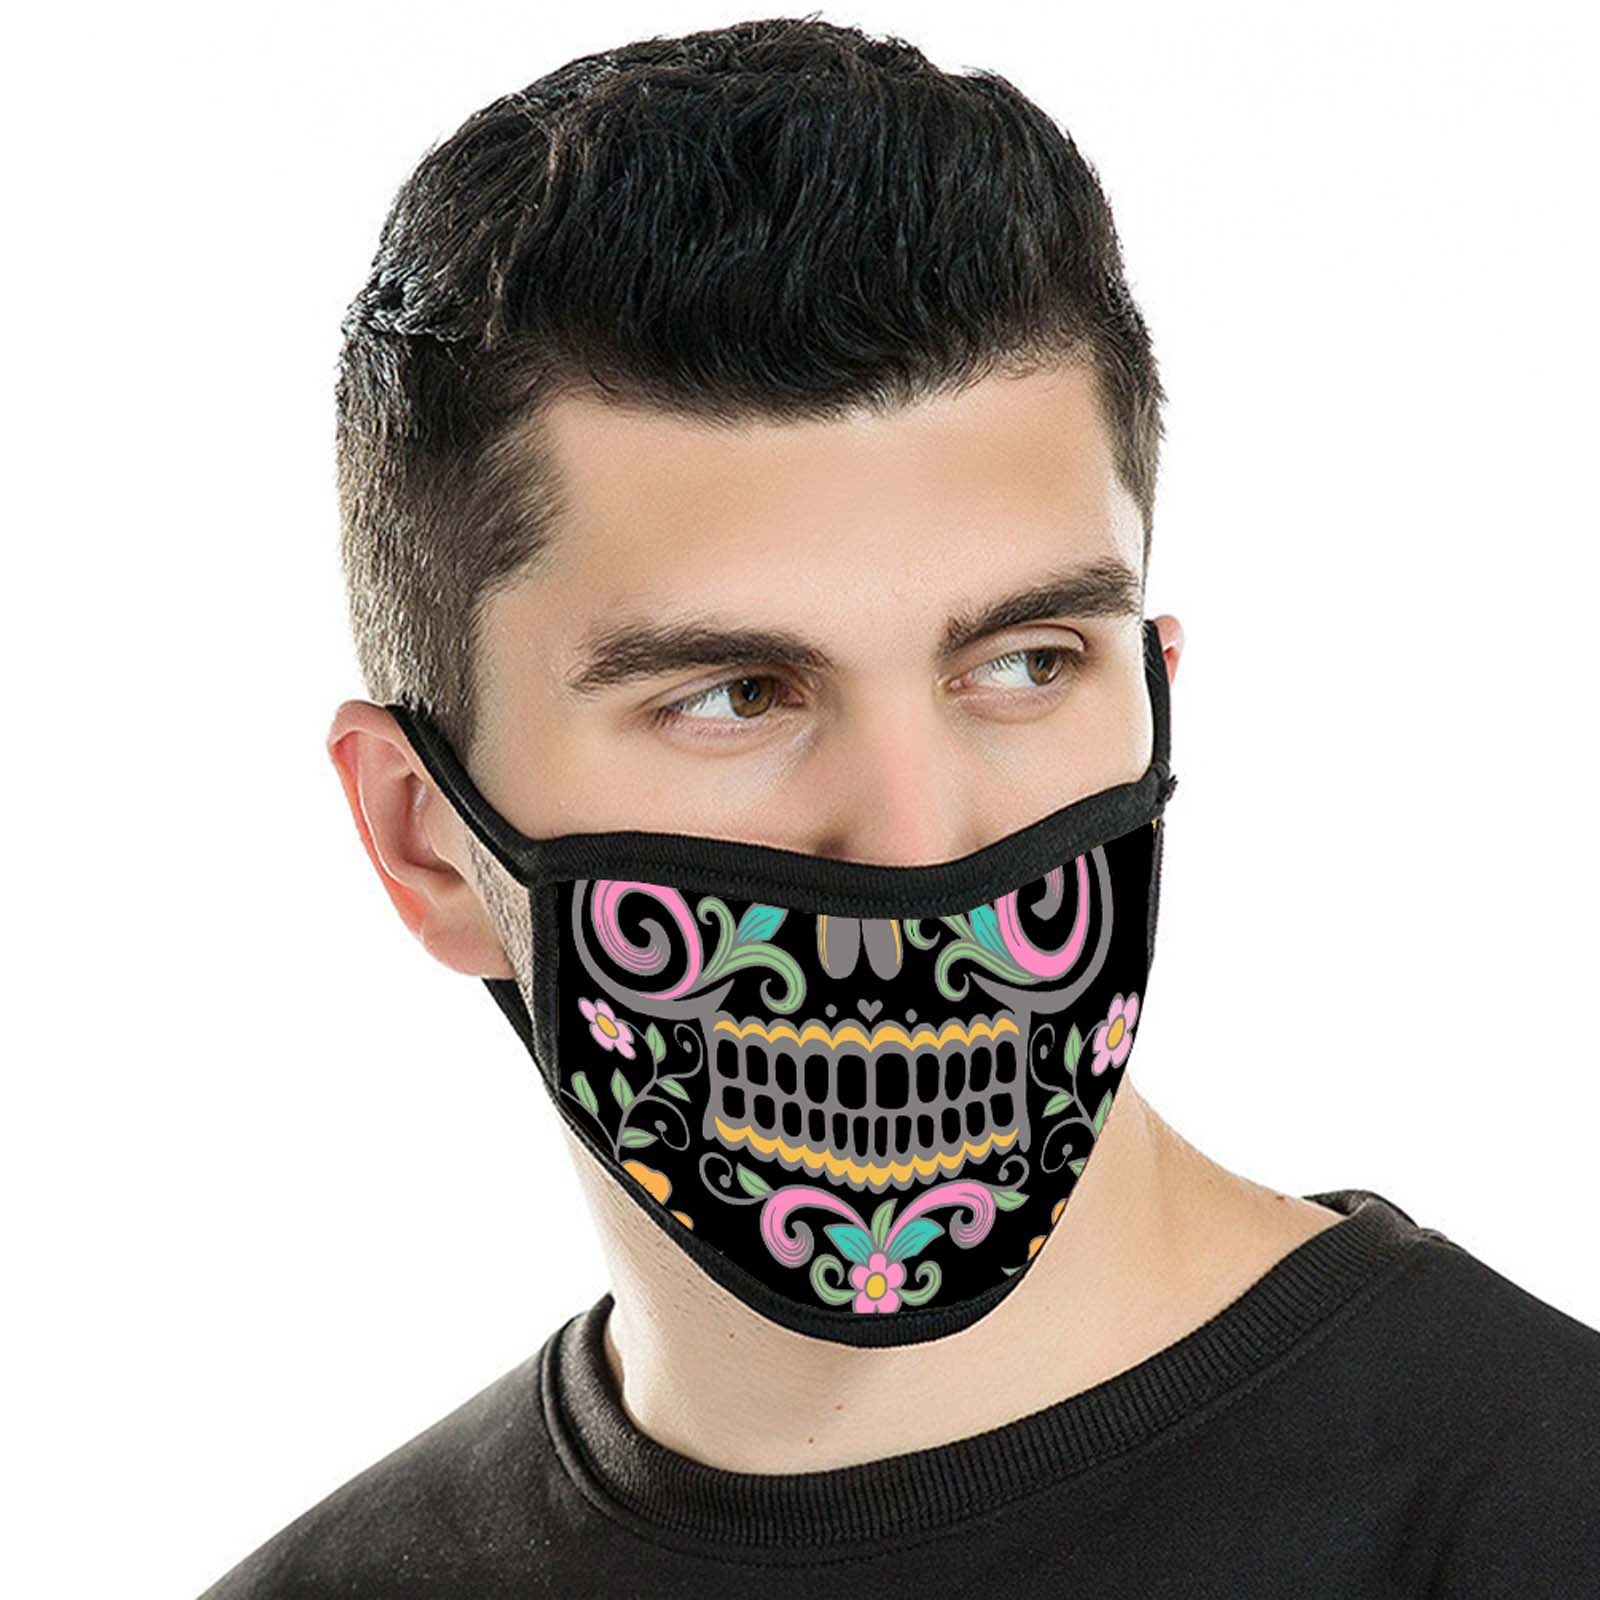 FCM-015 American Bling Black Floral Sugar Skull Fabric Face Mask Double Layer Set of 2